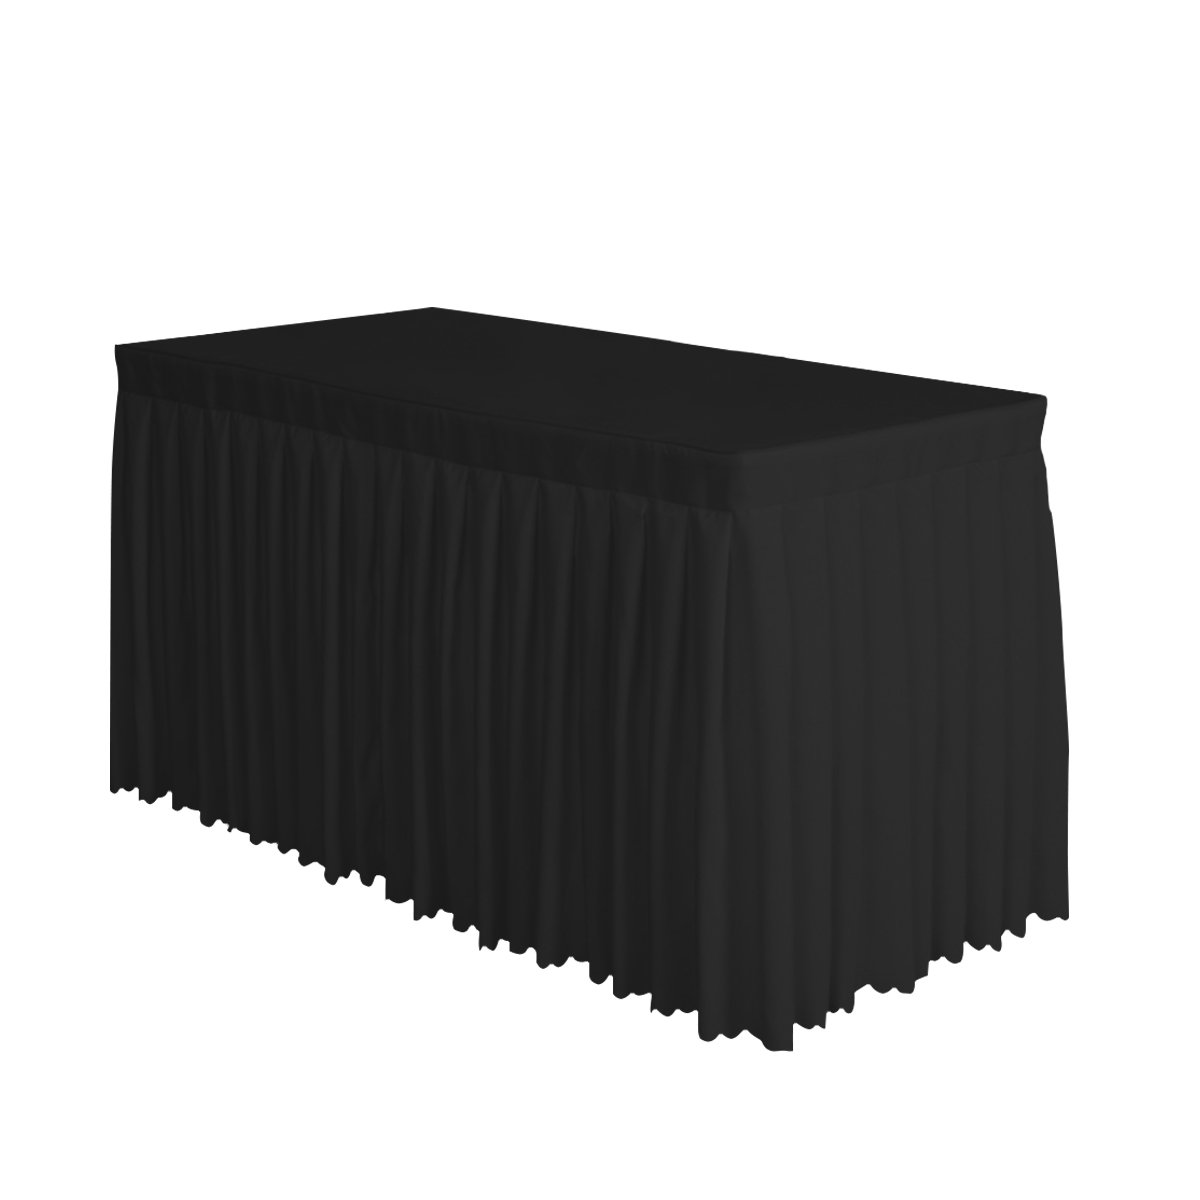 Surmente Tablecloth 14 ft Polyester Table Skirt for Weddings, Banquets, or Restaurants(Black) ... ...